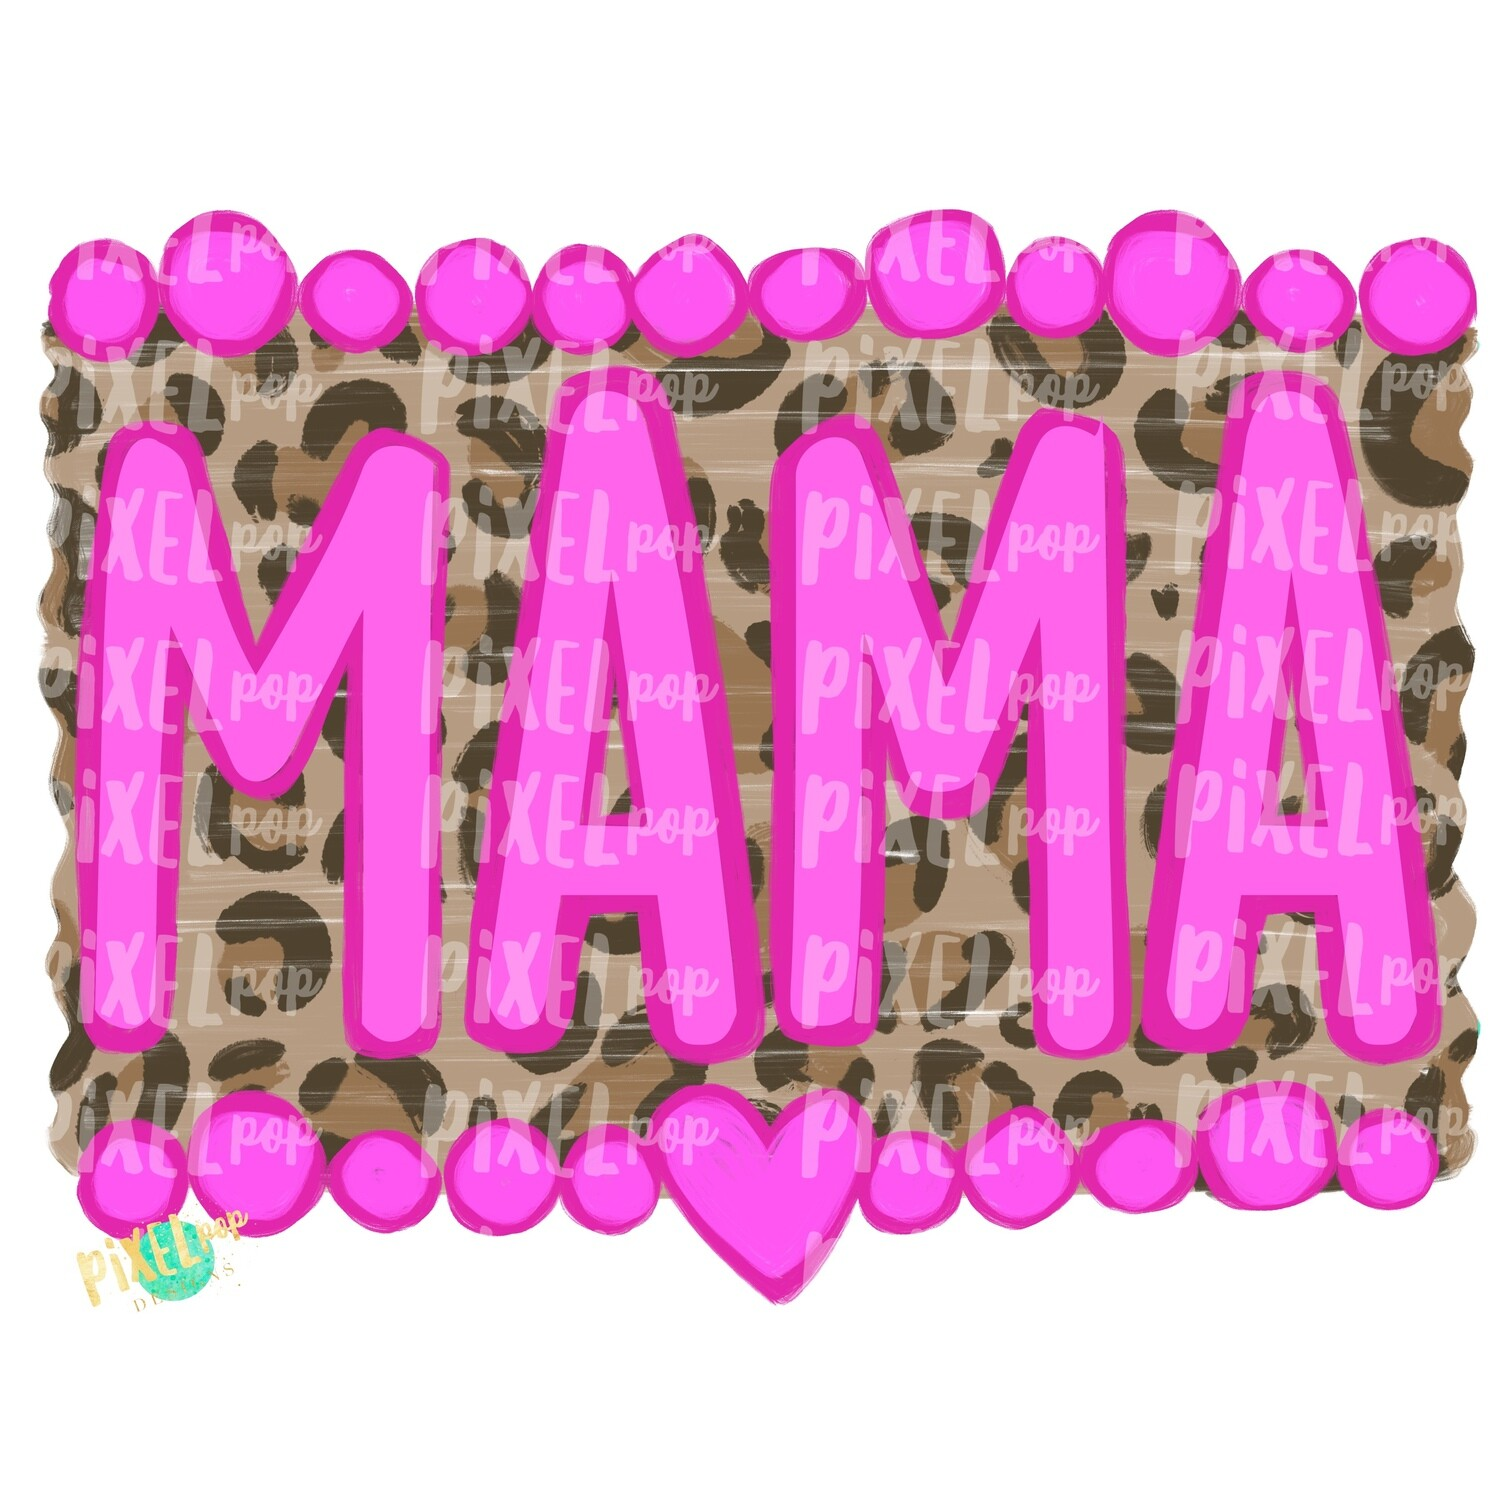 Mama Pinks and Leopard Print PNG | Sublimation Art | Daughter Design | Painted PNG | Sublimation PNG | Digital Download | Mother's Day | Art